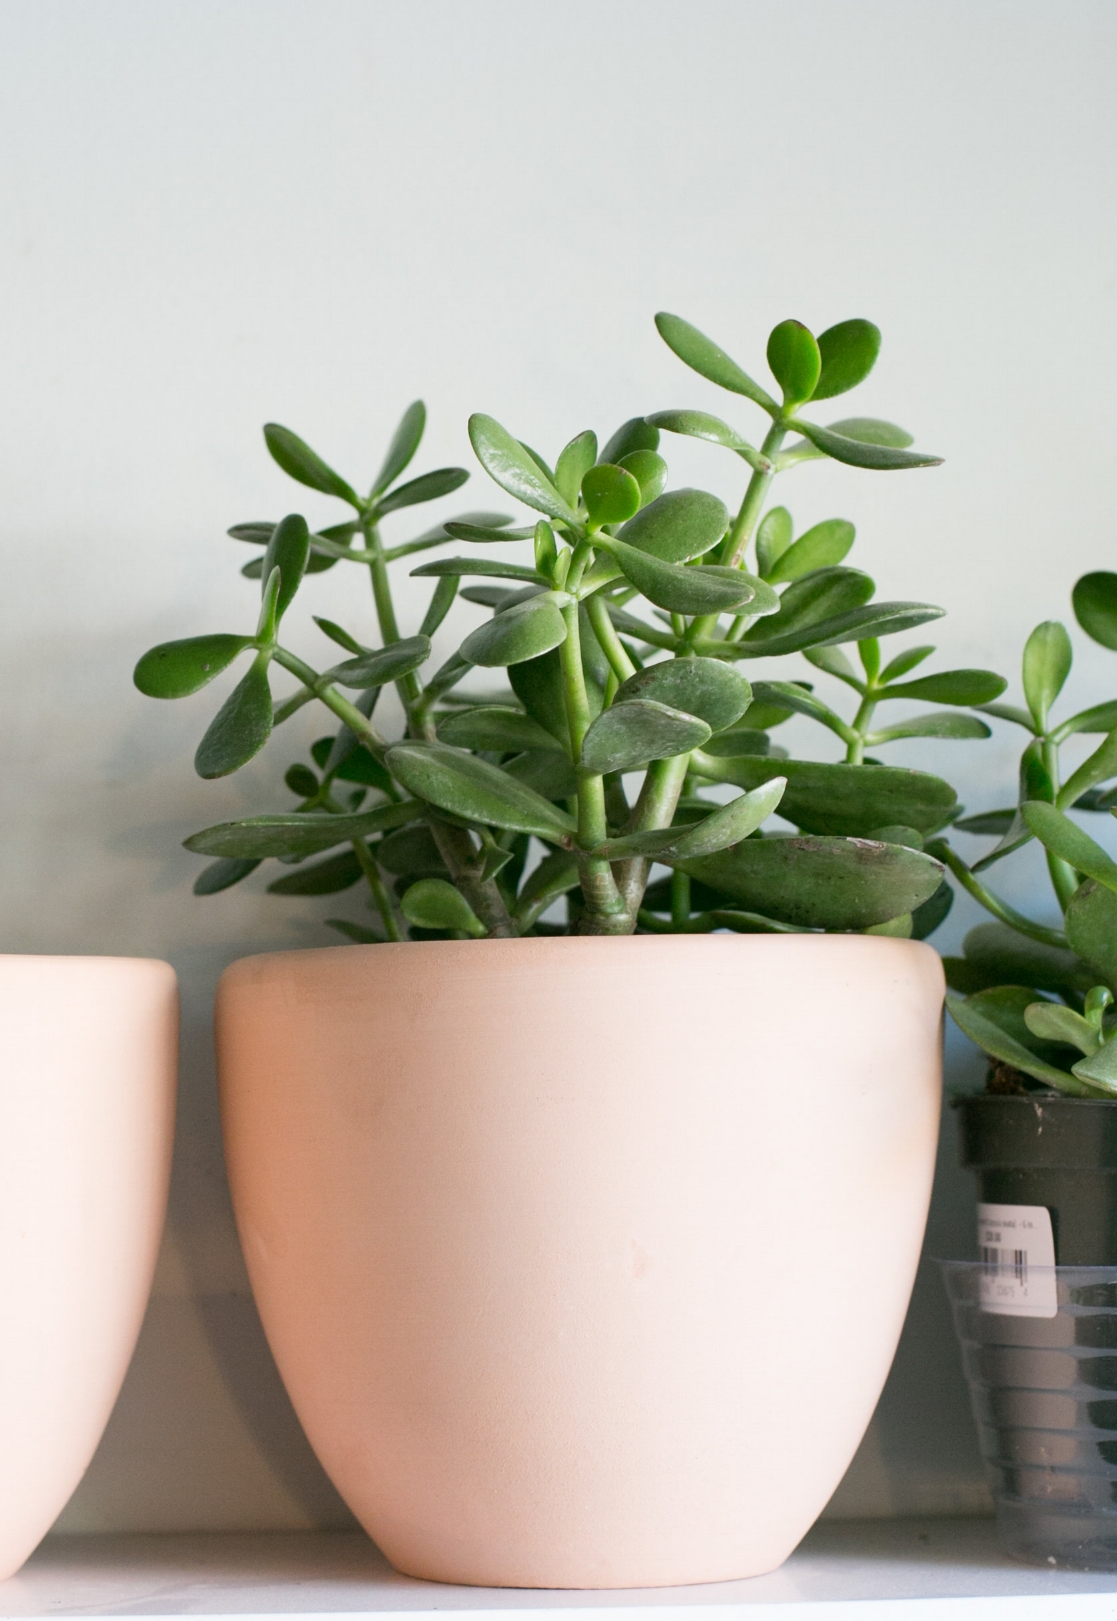 Jade plants will let you know when they need water. The leaves will become slightly withered and crumpled in appearance.